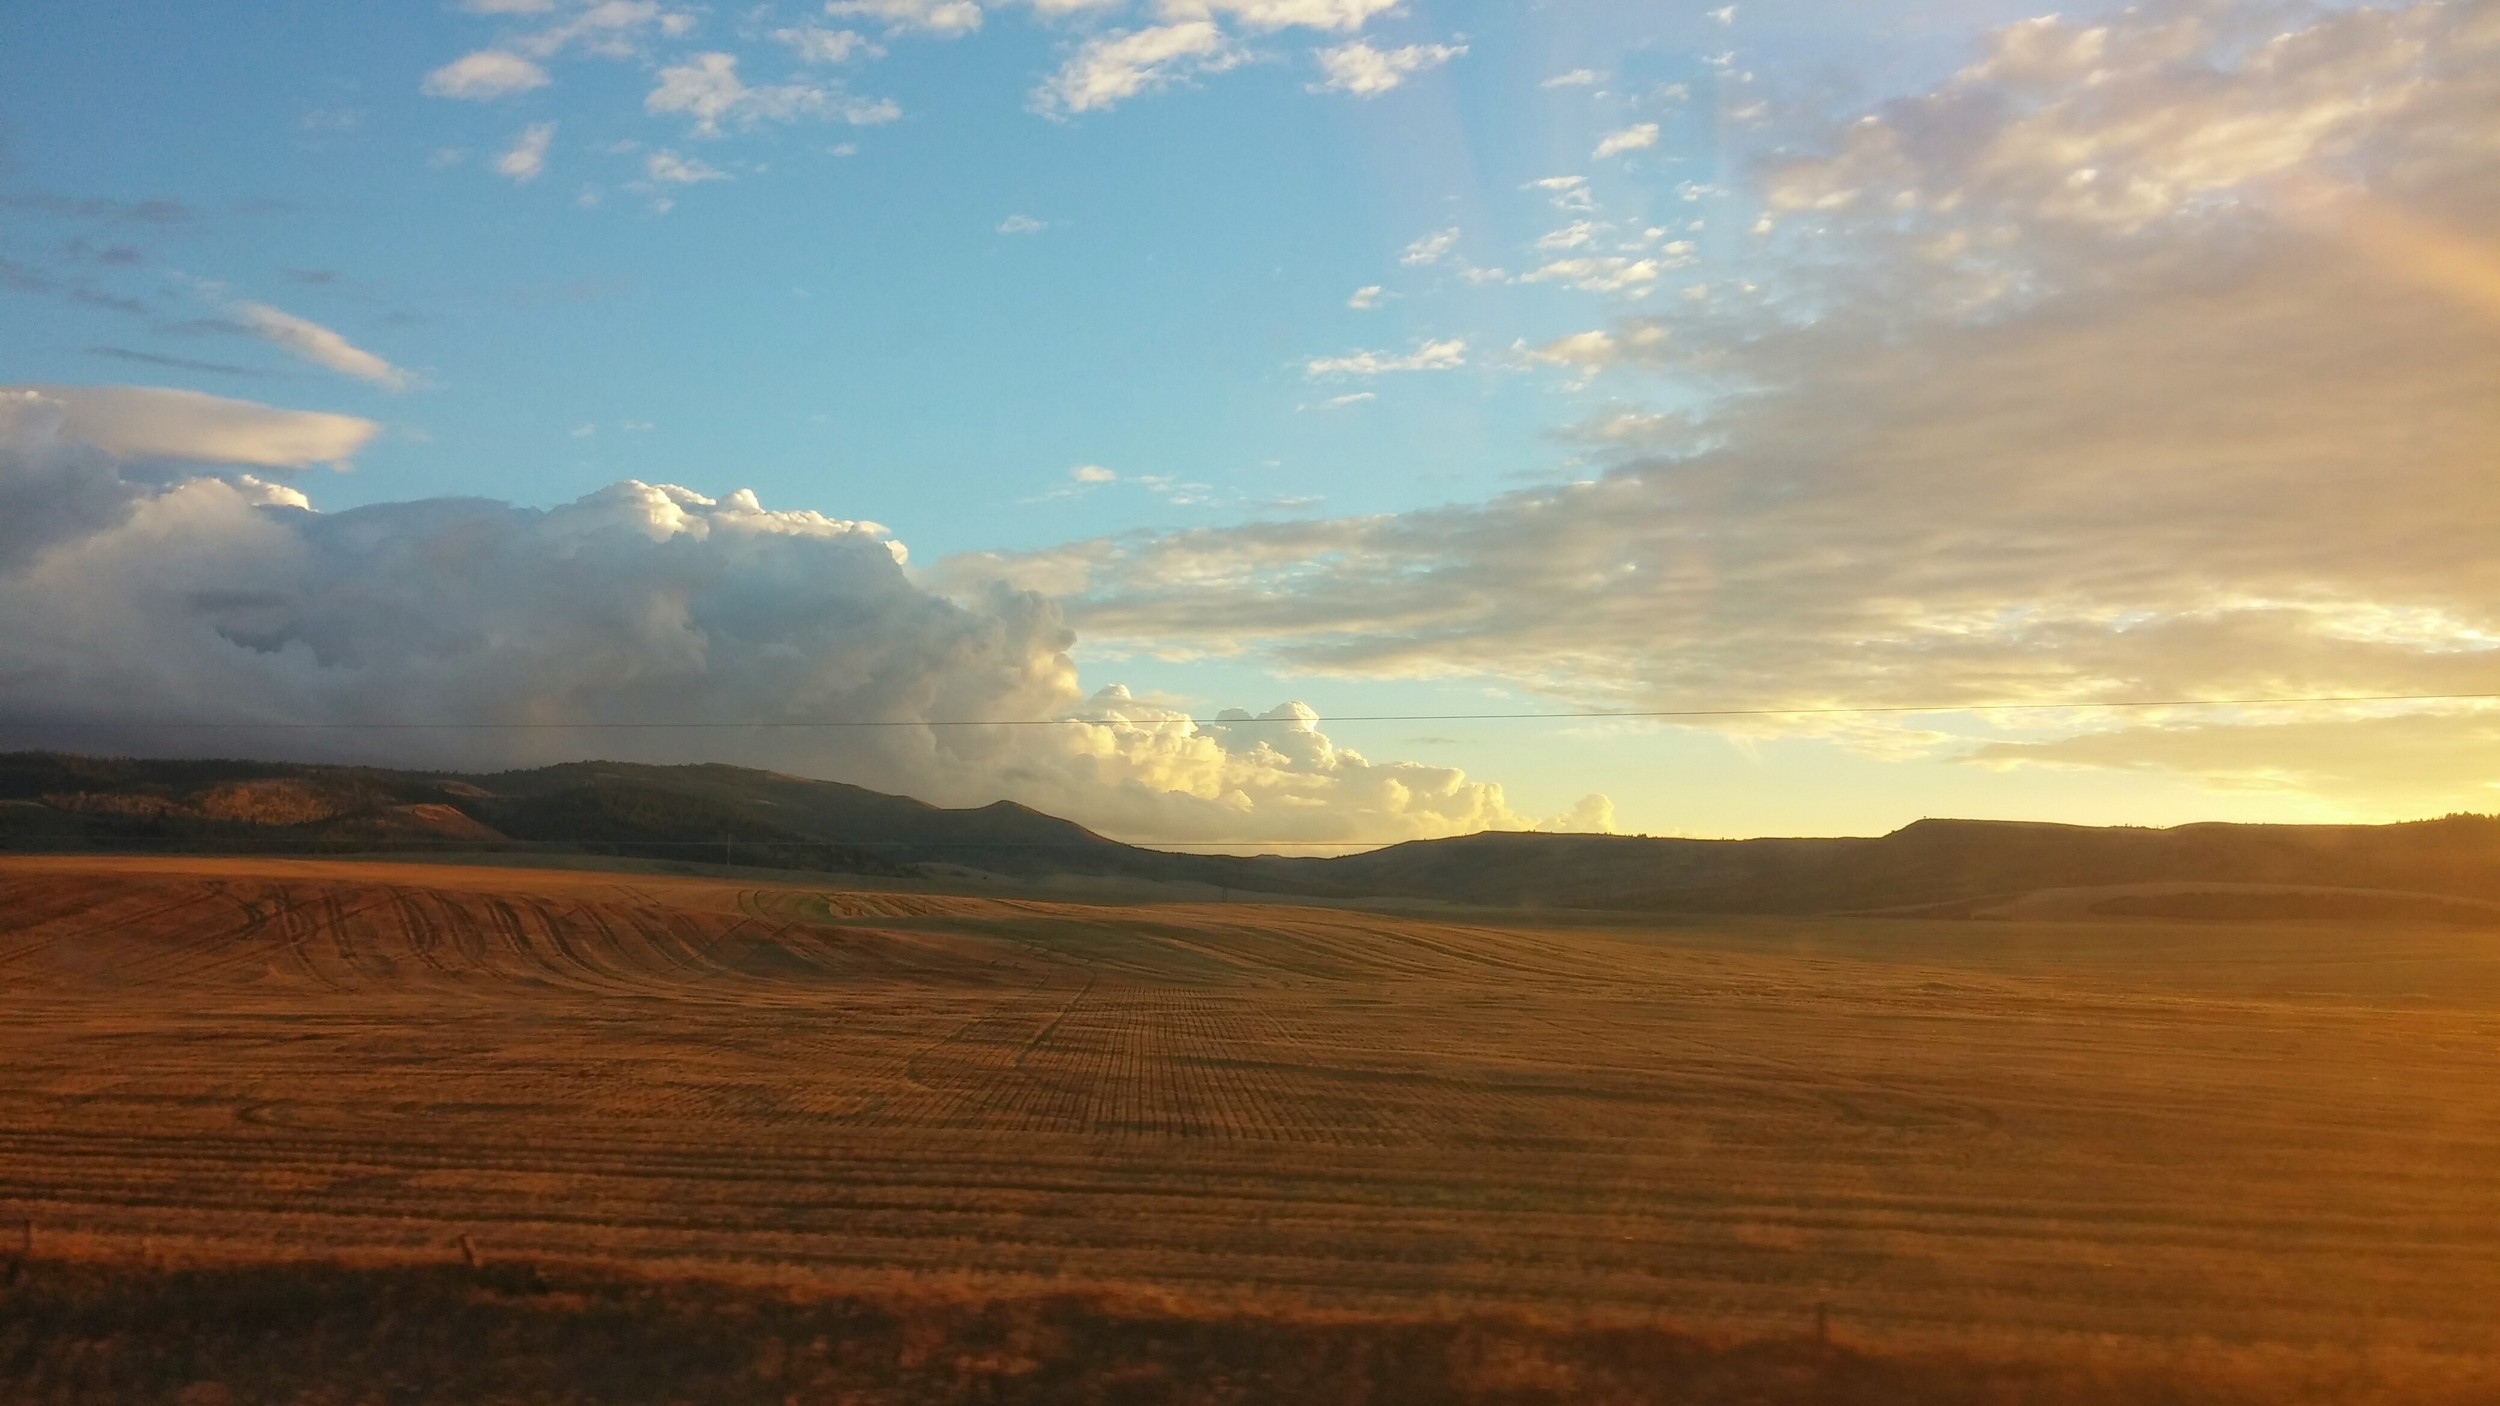 So much of our journey has been driving by wide open spaces in God's country!